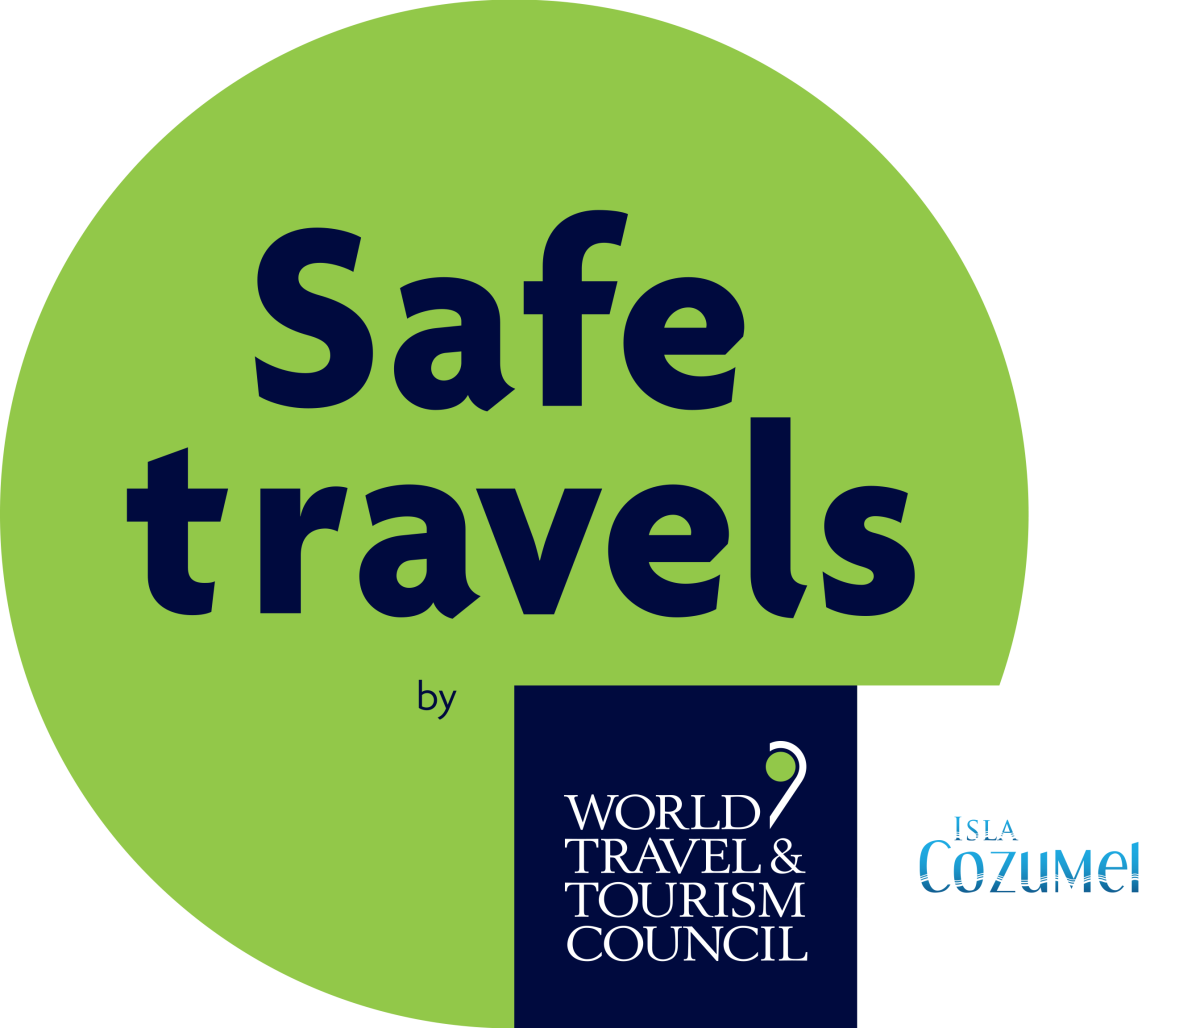 WTTC SafeTravels Stamp - Isla Cozumel